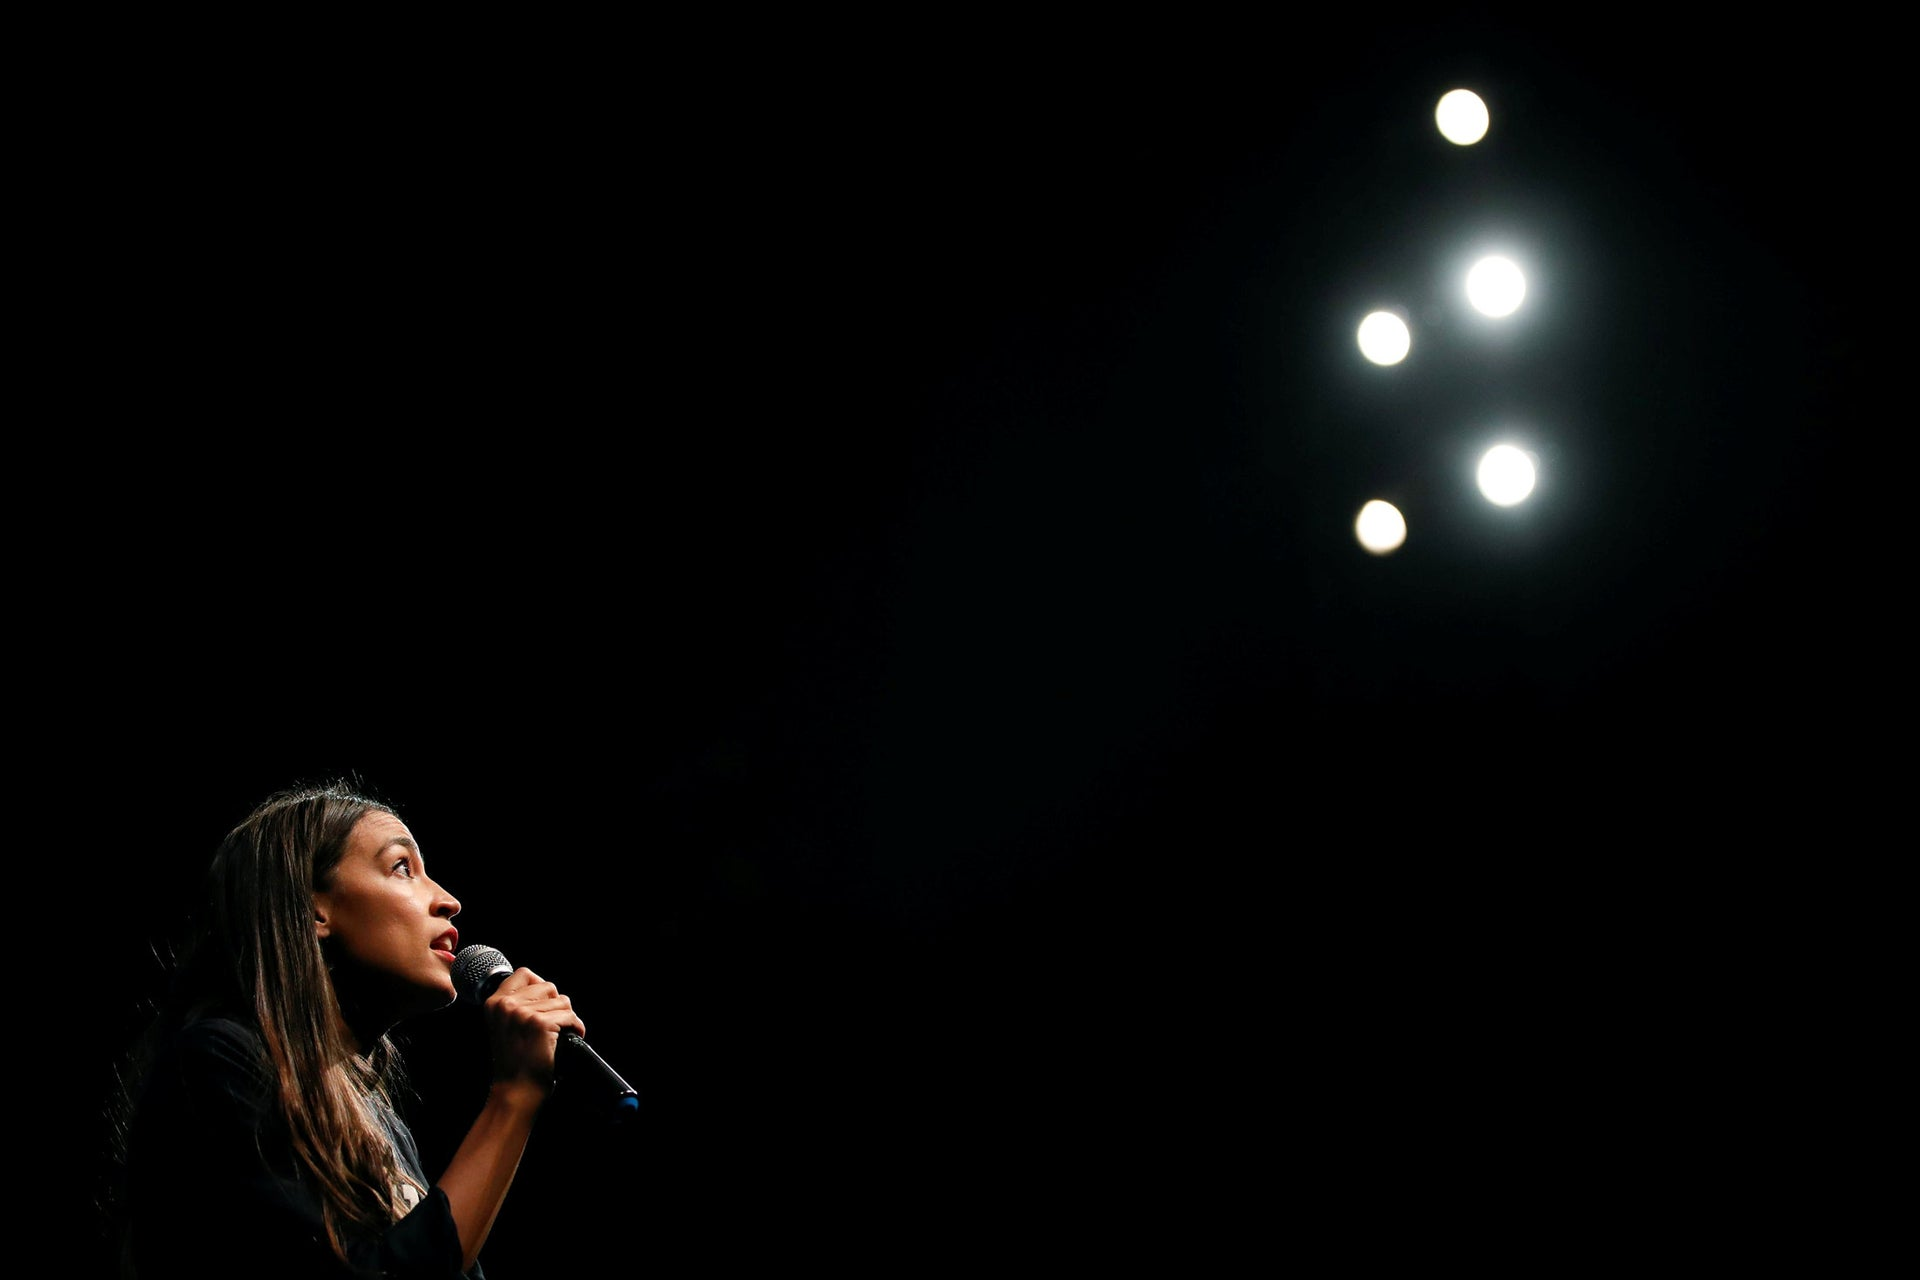 New York congressional candidate Alexandria Ocasio-Cortez addresses supporters at a fundraiser Aug. 2, 2018, in Los Angeles.